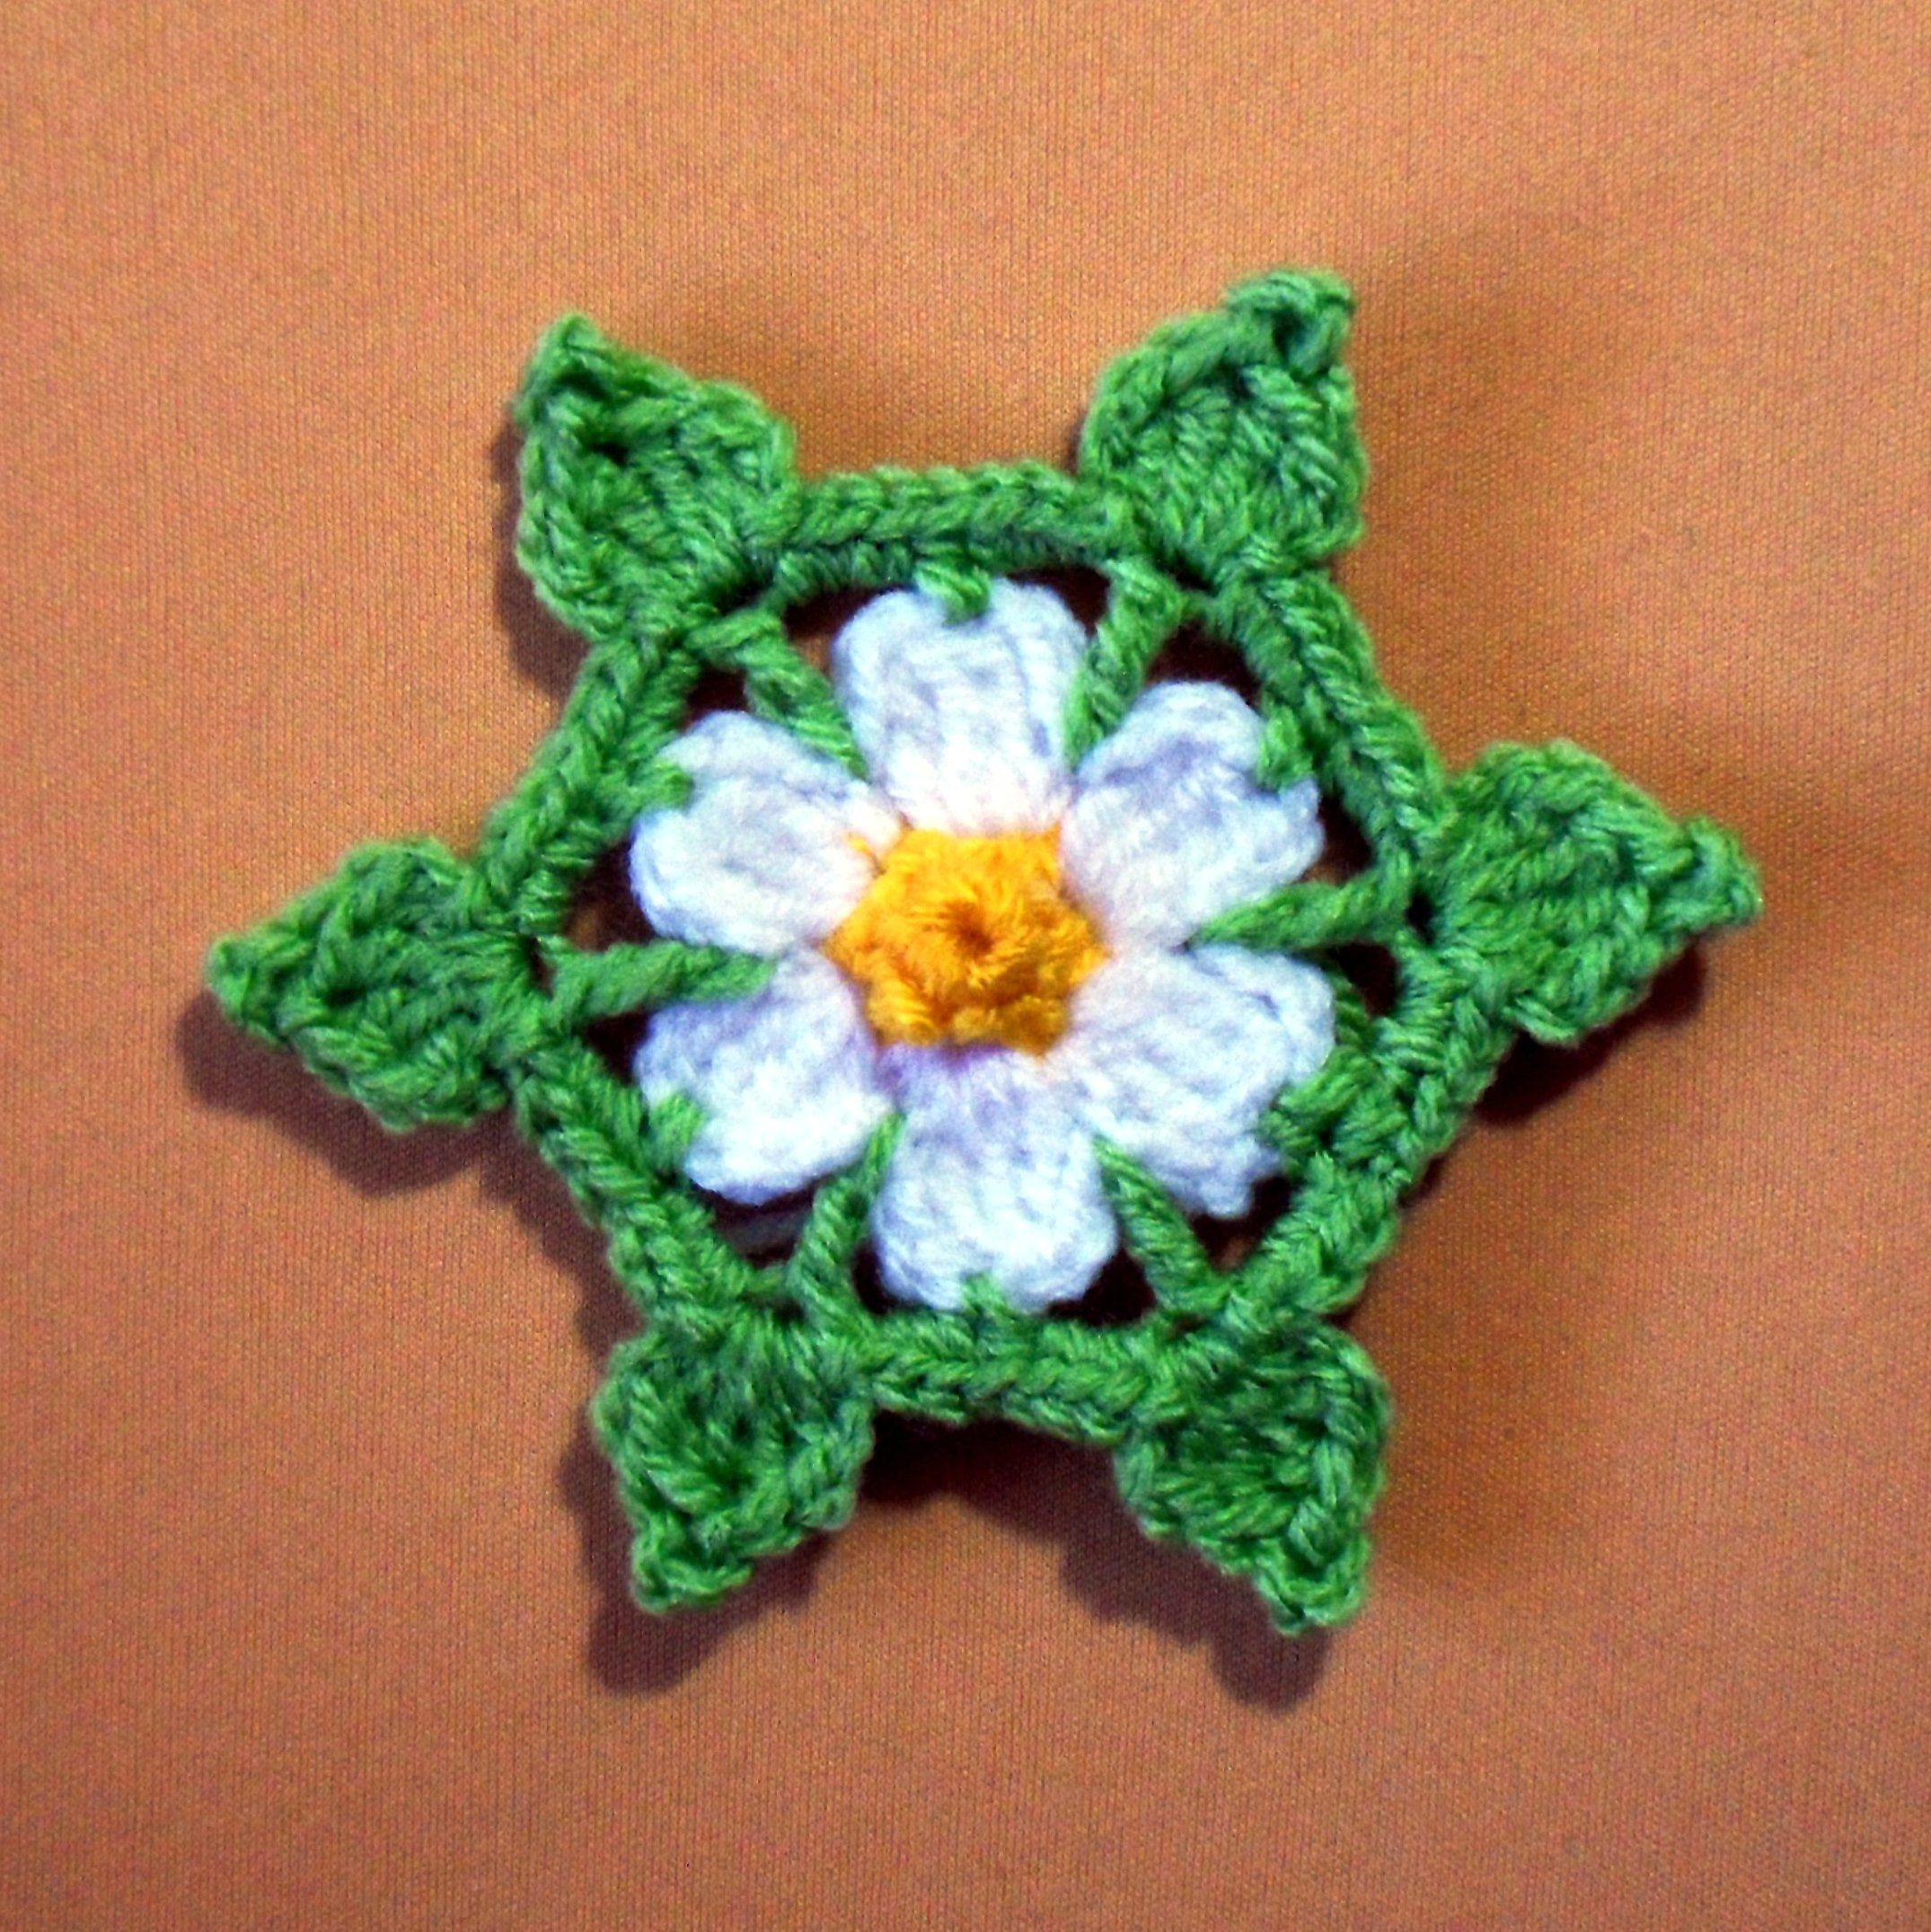 Daisy Star Pattern by danielasneedleart.wordpress.com (plus lots of other cute patterns on her site)